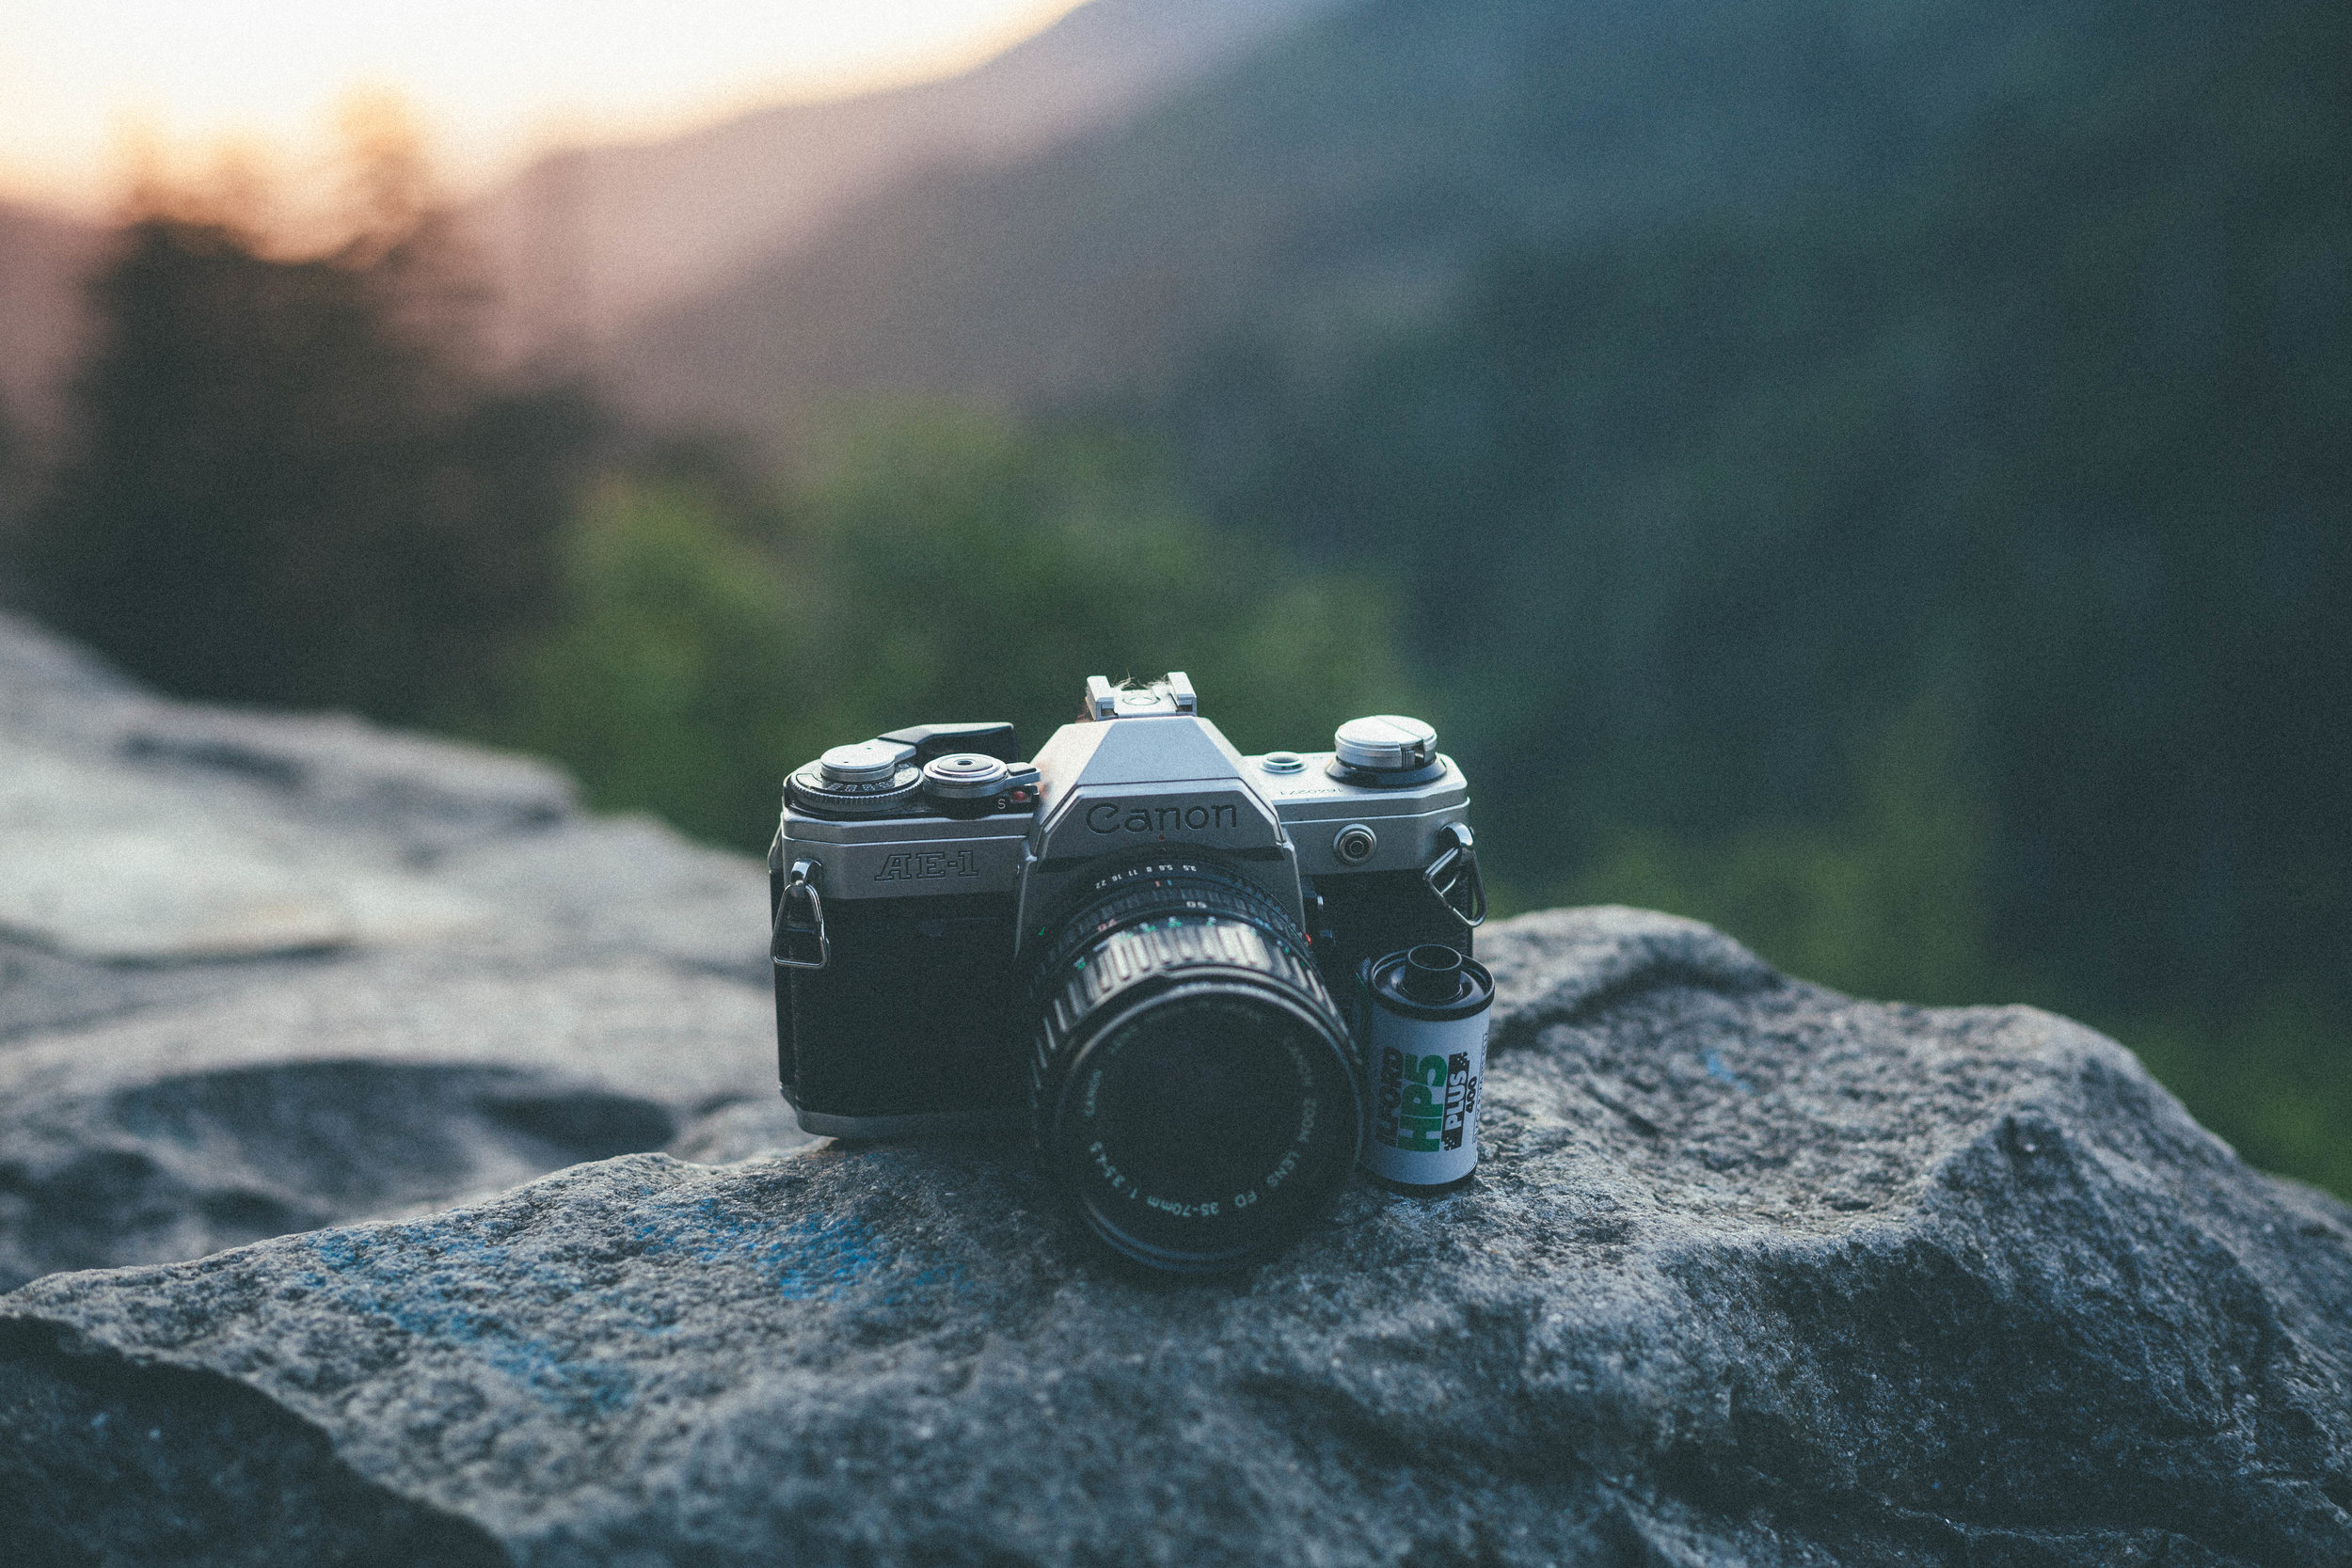 camera on rock at overlook